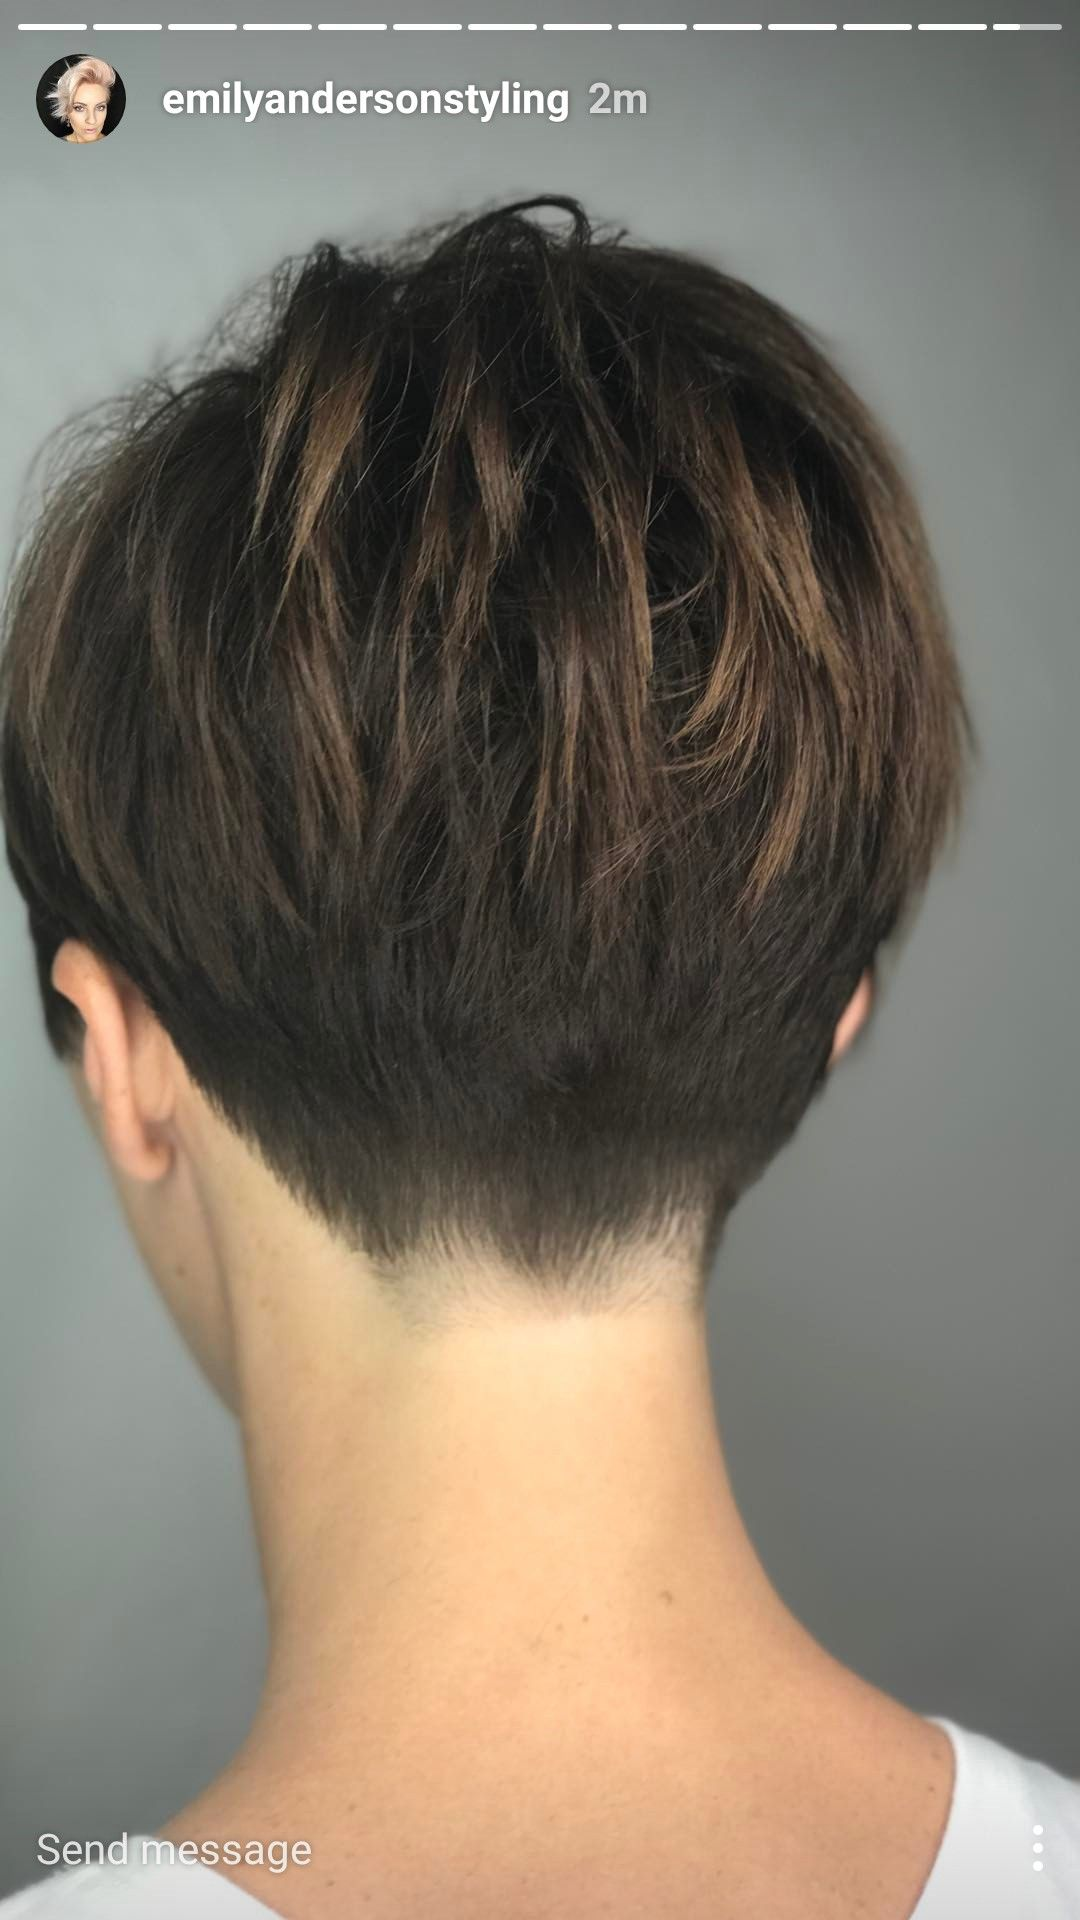 pin by aimee sprik on hair | short hair styles, short hair